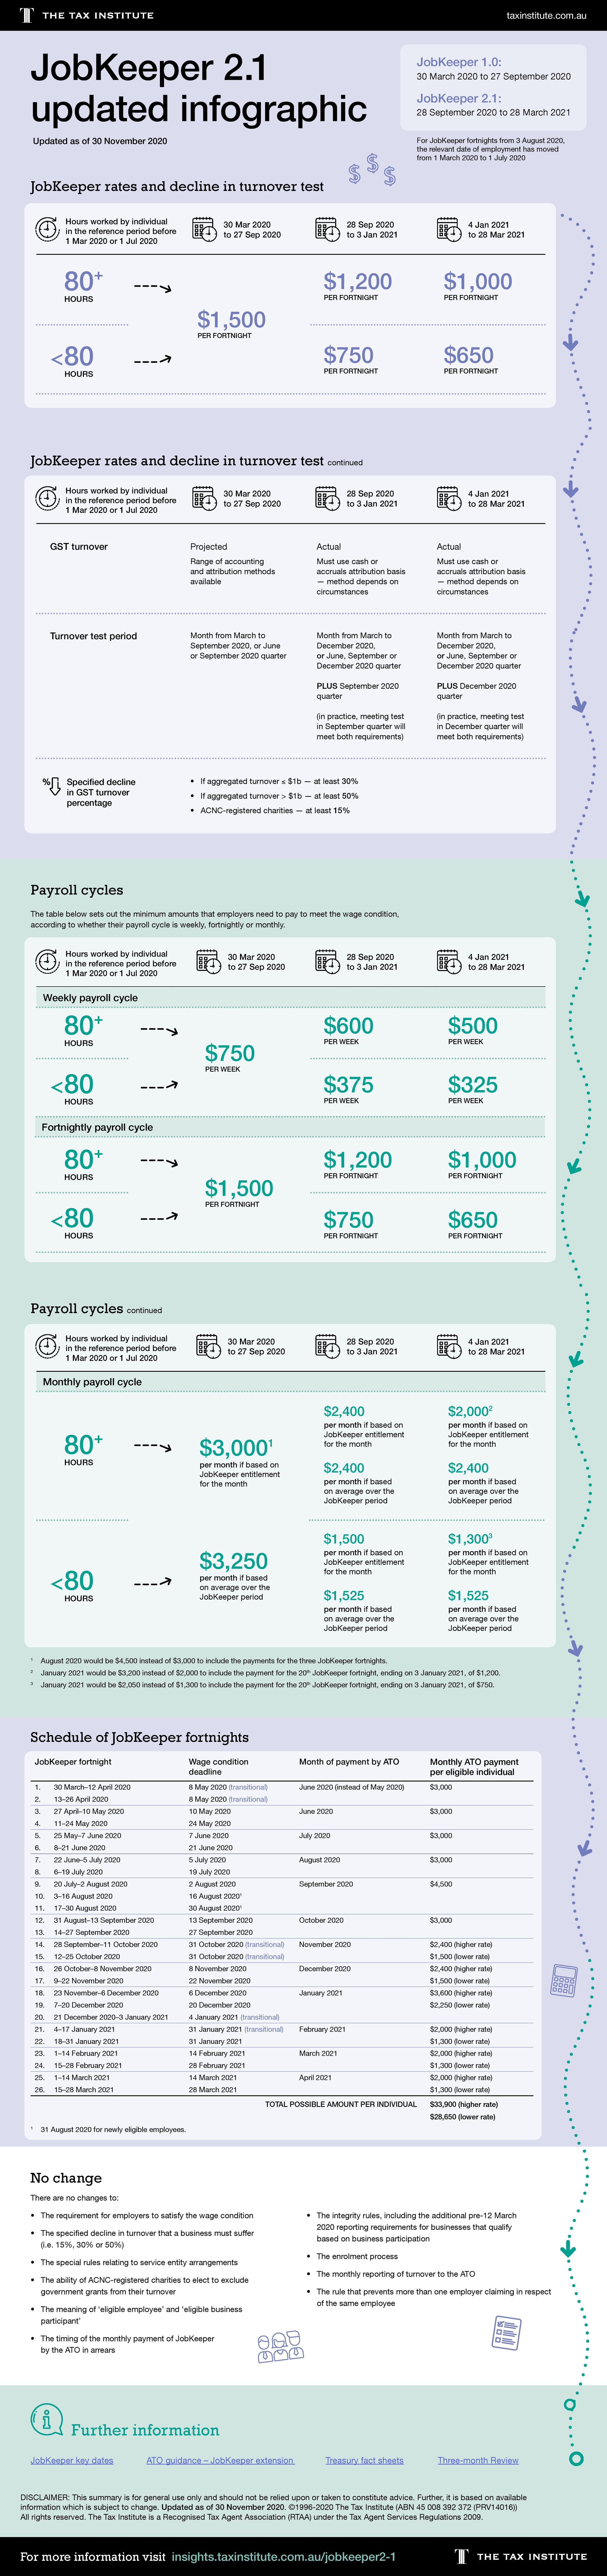 0100TTI_JobKeeper_2.1_Infographic_assets_v10-WD-FA_scroll-page-001